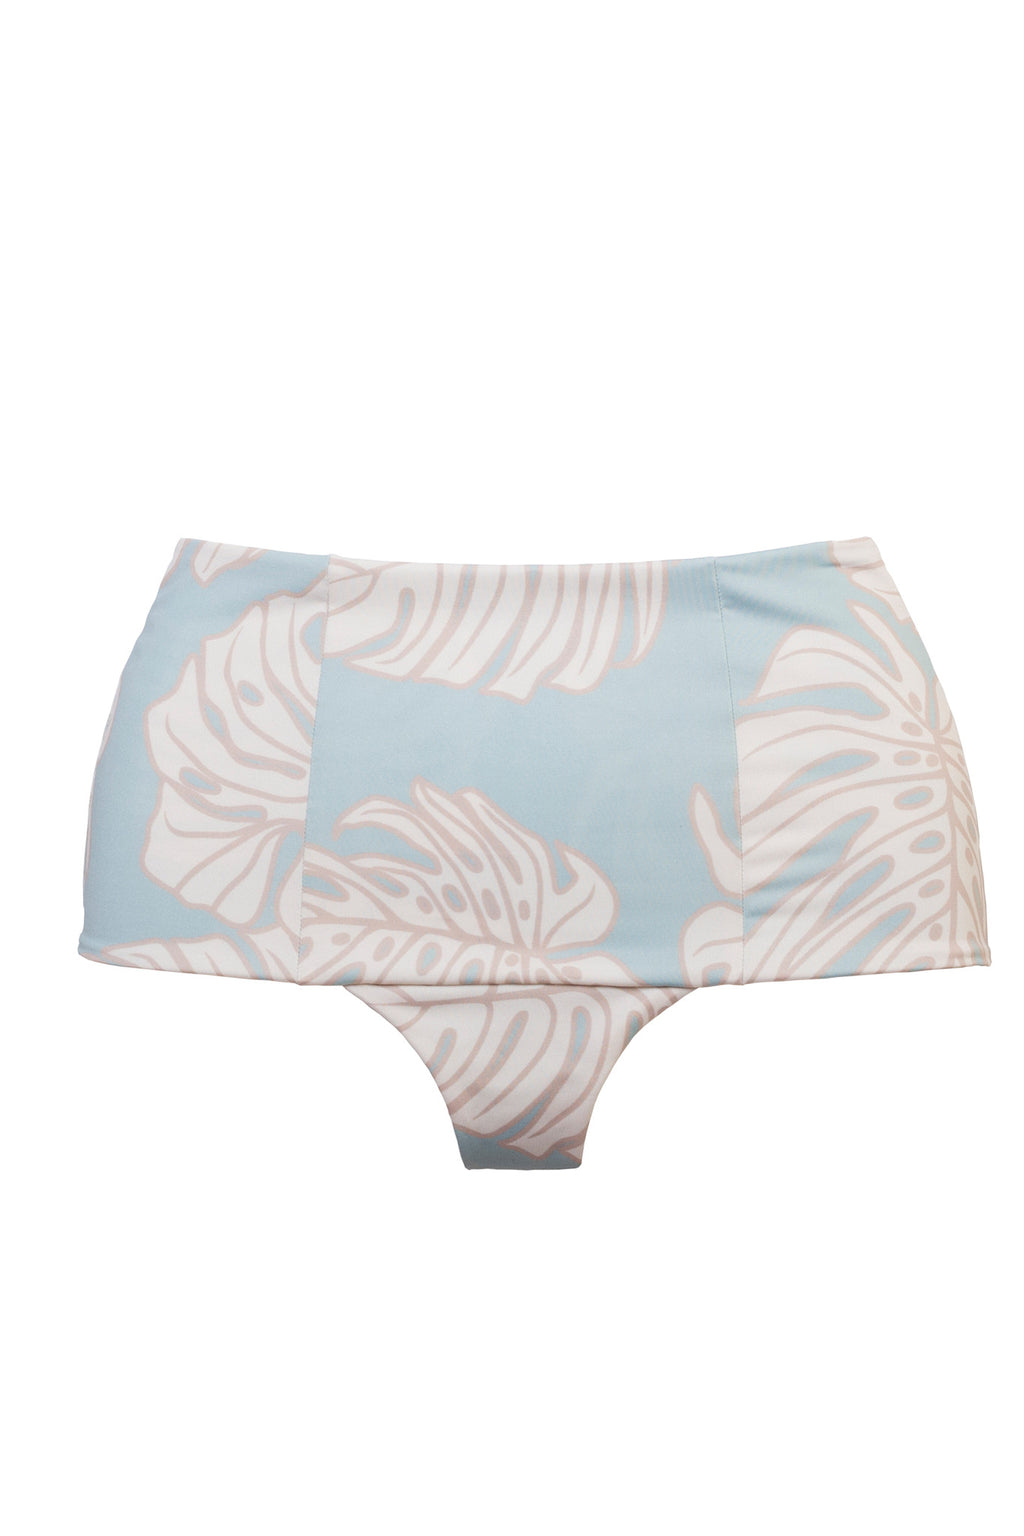 Aqua Leaf Retro Short